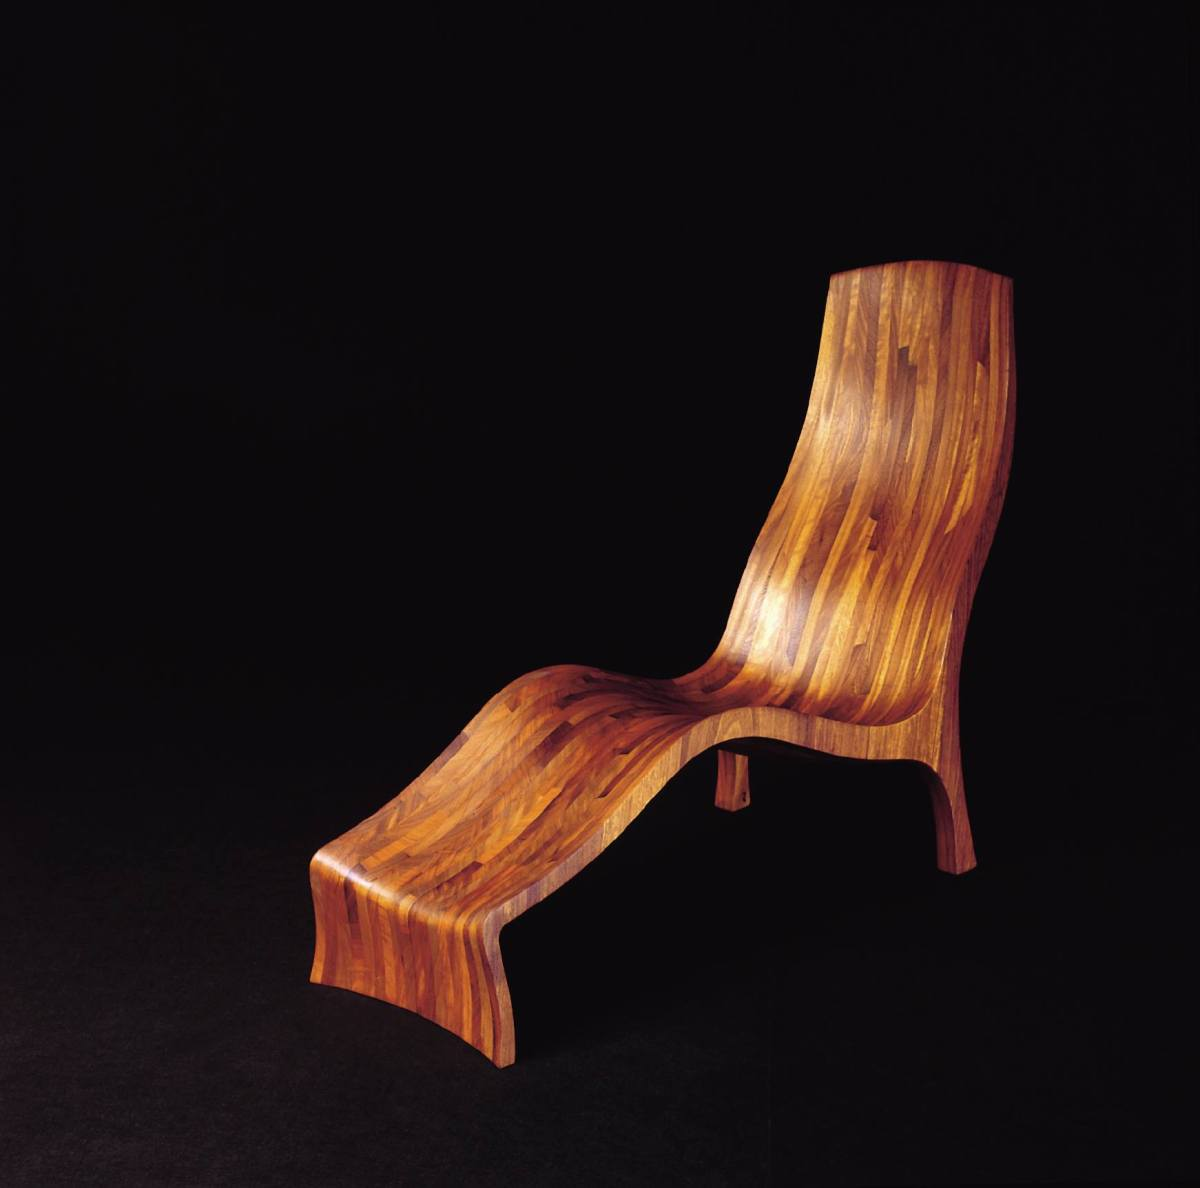 Rampel Designs – Legacy Furniture in Kenya